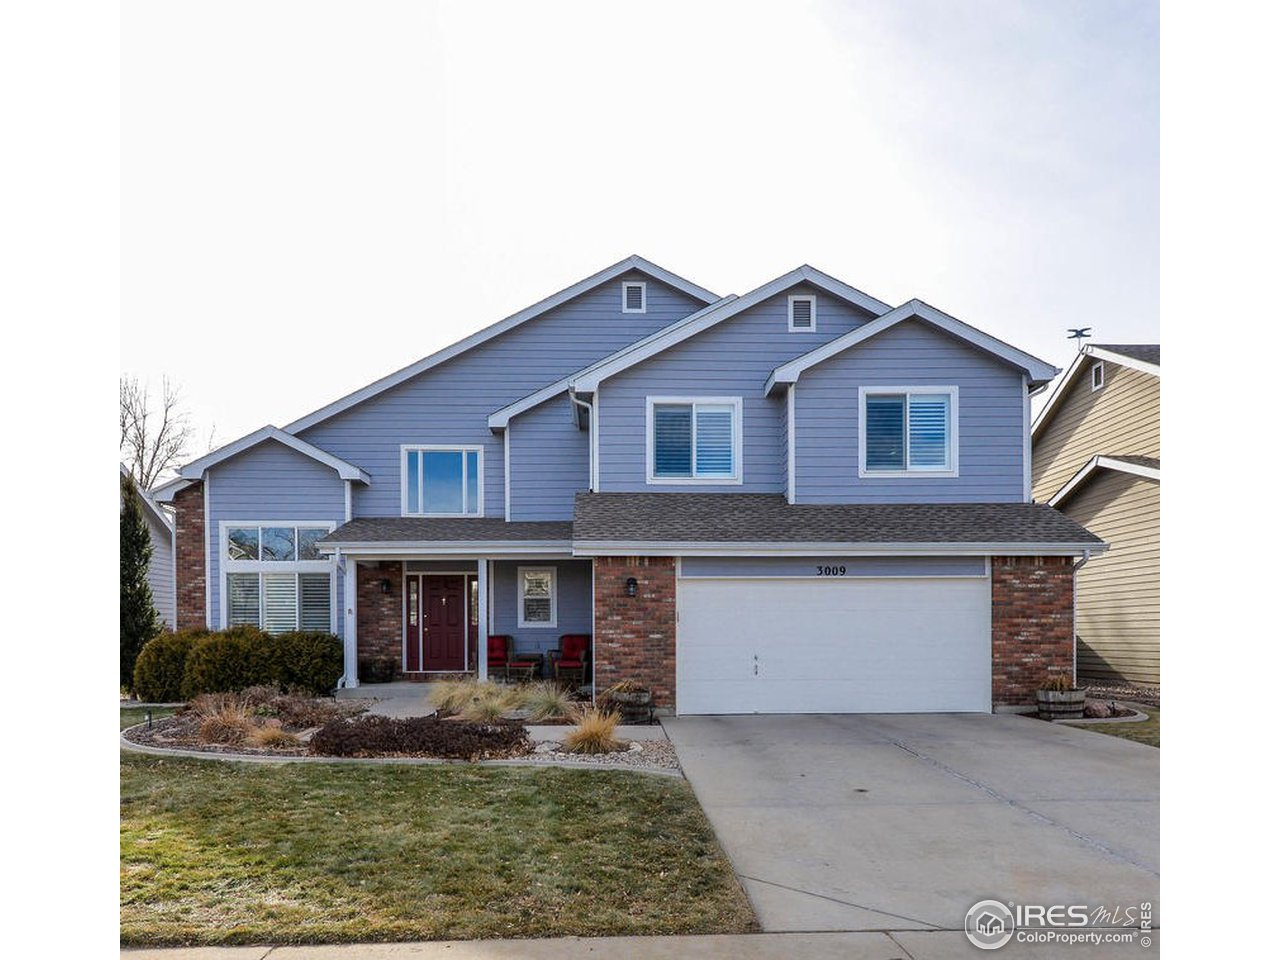 3009 Stonehaven Dr, Fort Collins CO 80525